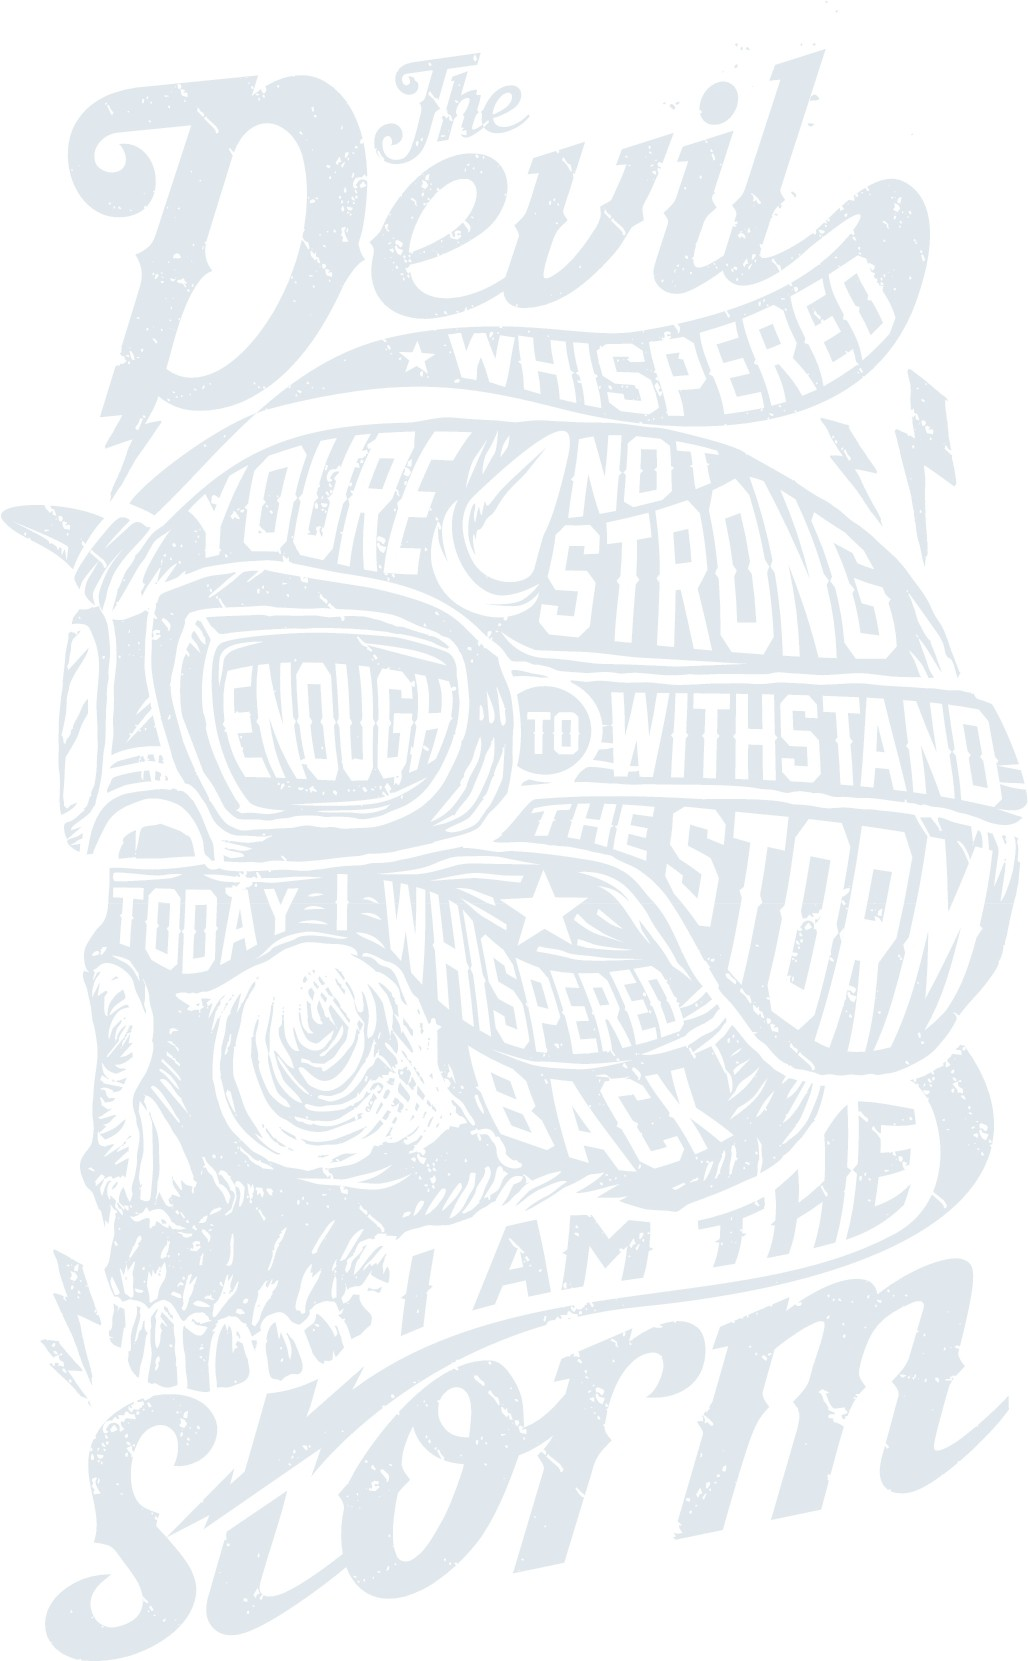 Powerful T-shirt design needed for Inspirational Quote